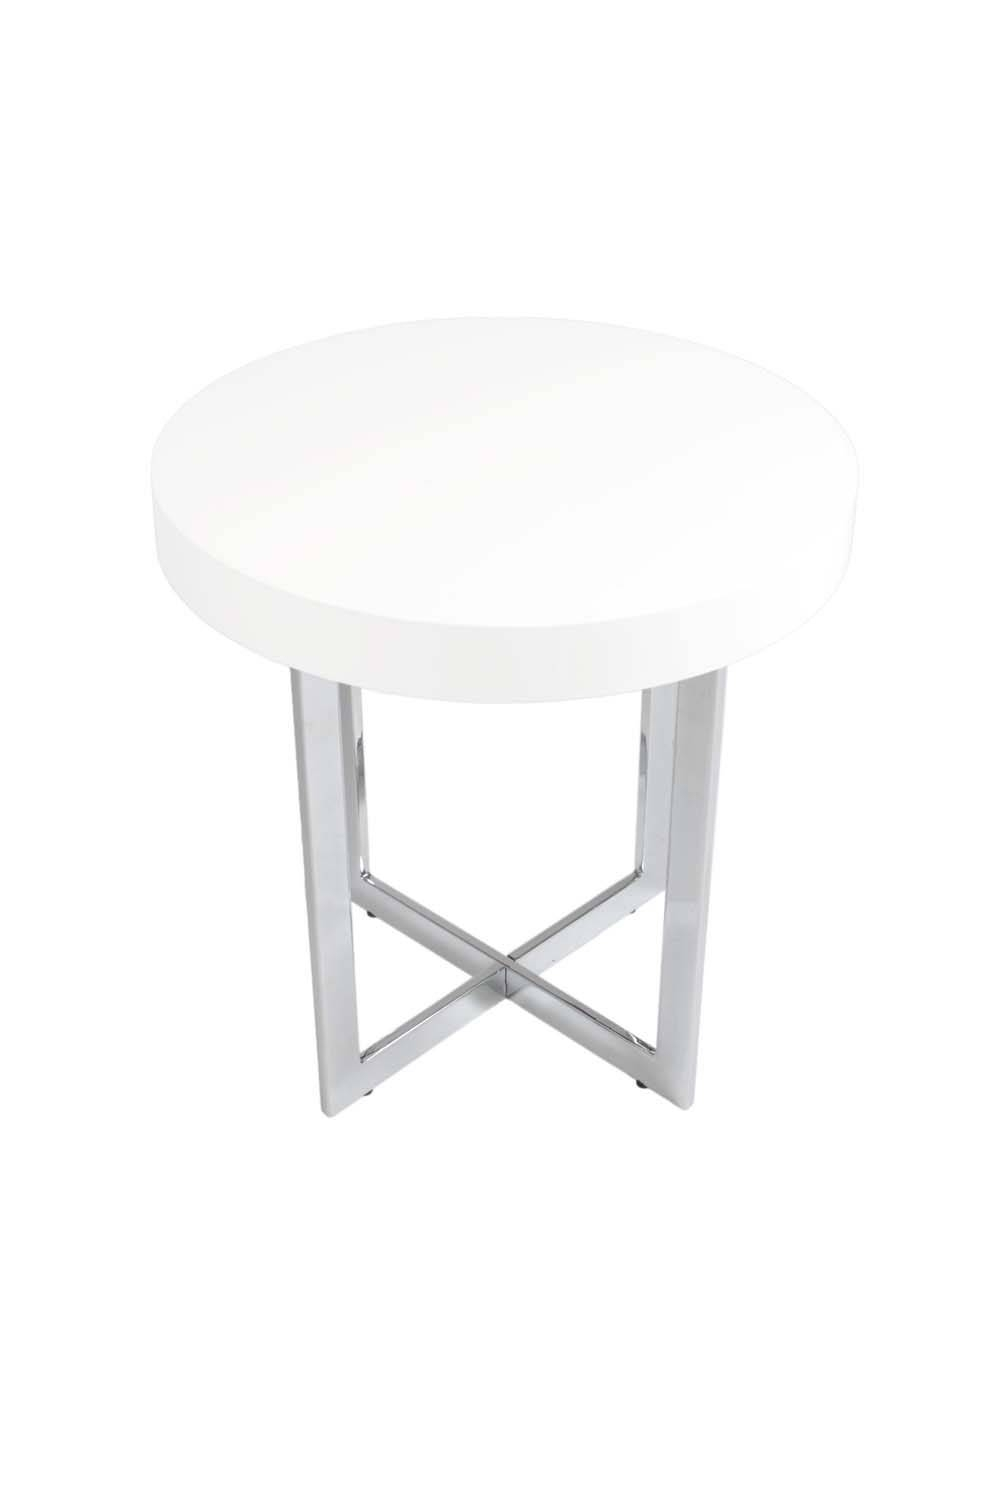 Eurostyle Oliver Round Wood Top Side Table In White Lacquer with regard to White and Chrome Coffee Tables (Image 11 of 30)